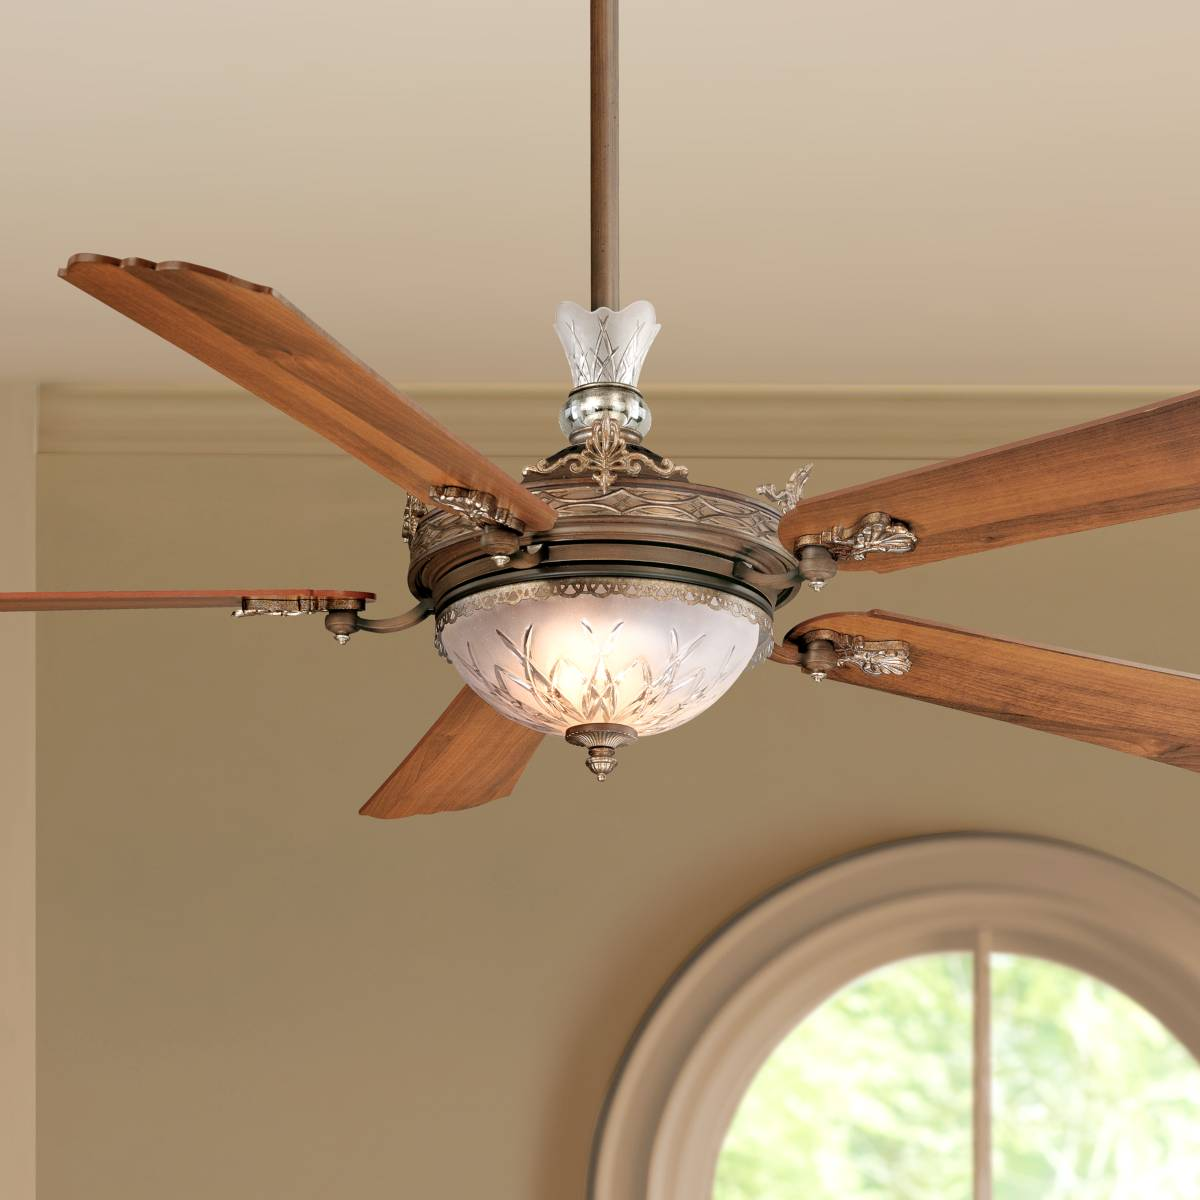 Murray Feiss Ceiling Fan Light Kit: 5 Blade, 60 In. Span Or Larger, Wall Control, Ceiling Fans